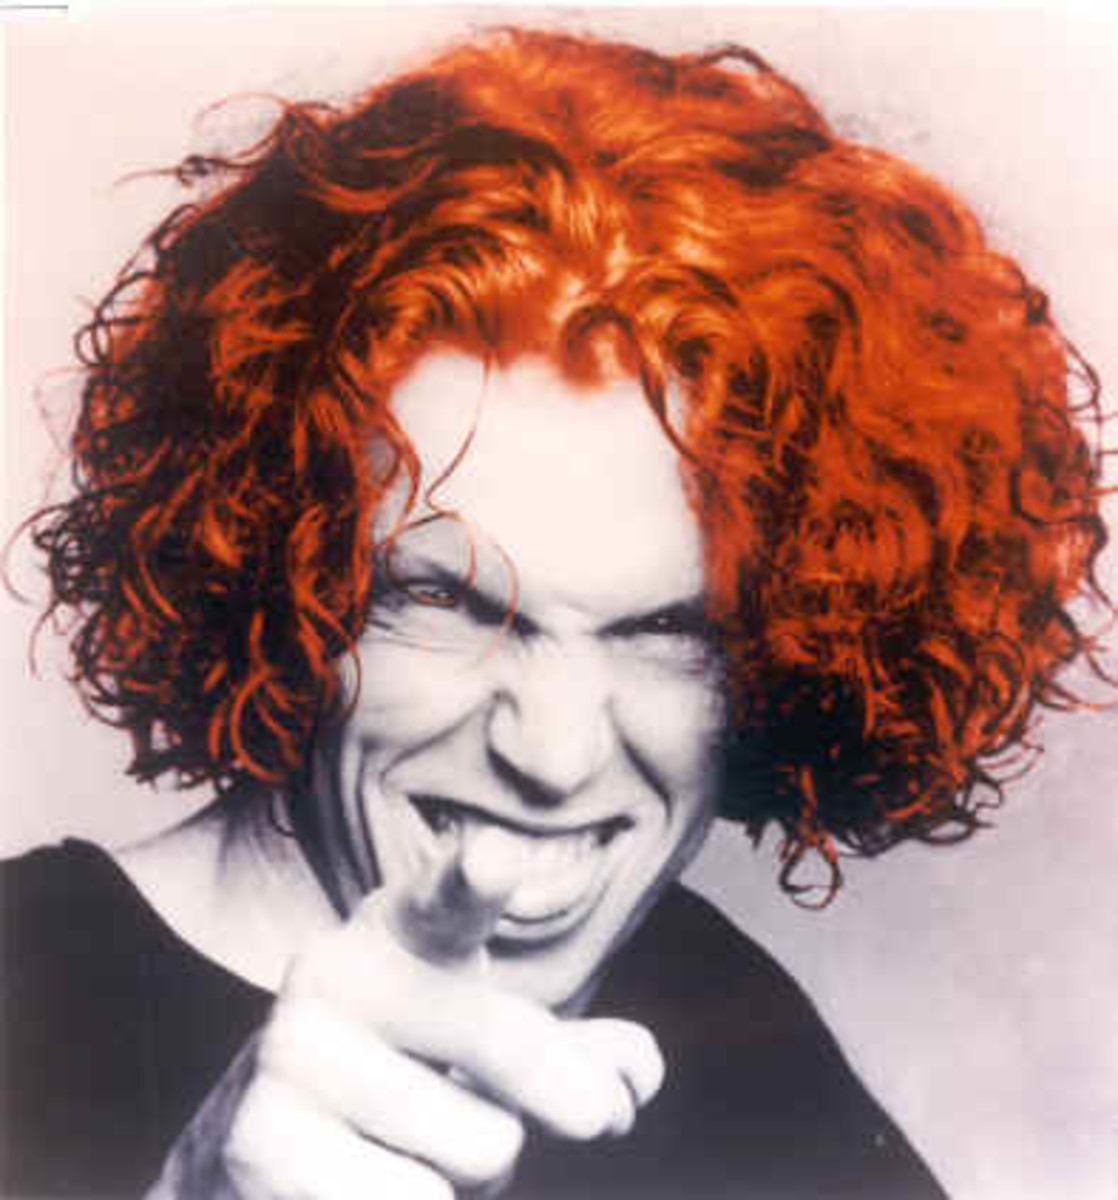 Carrot Top. Guys like this give the rest of us redheads a bad name.